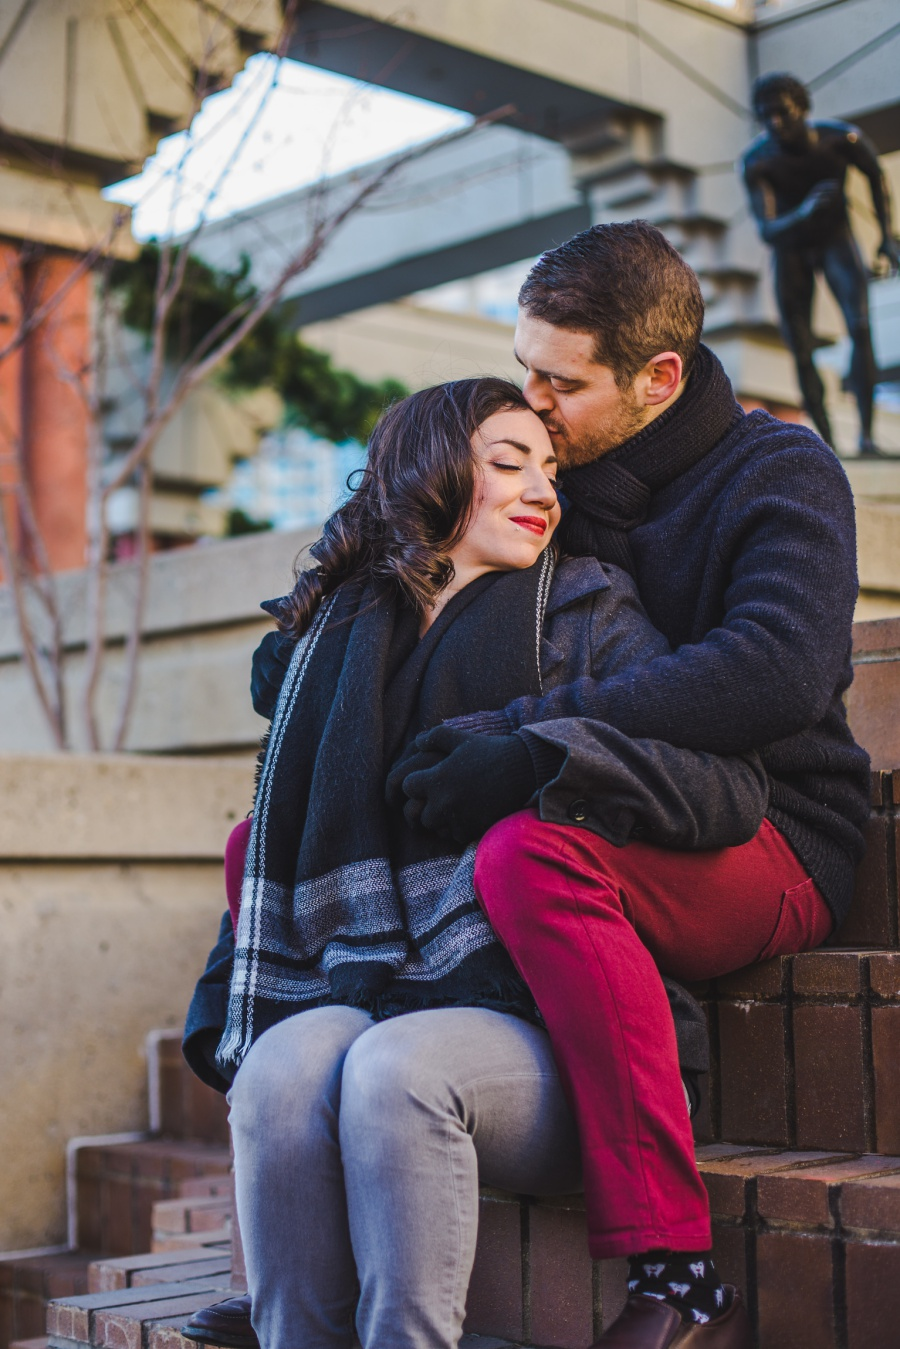 calgary olympic plaza engagement photos session brick stairs